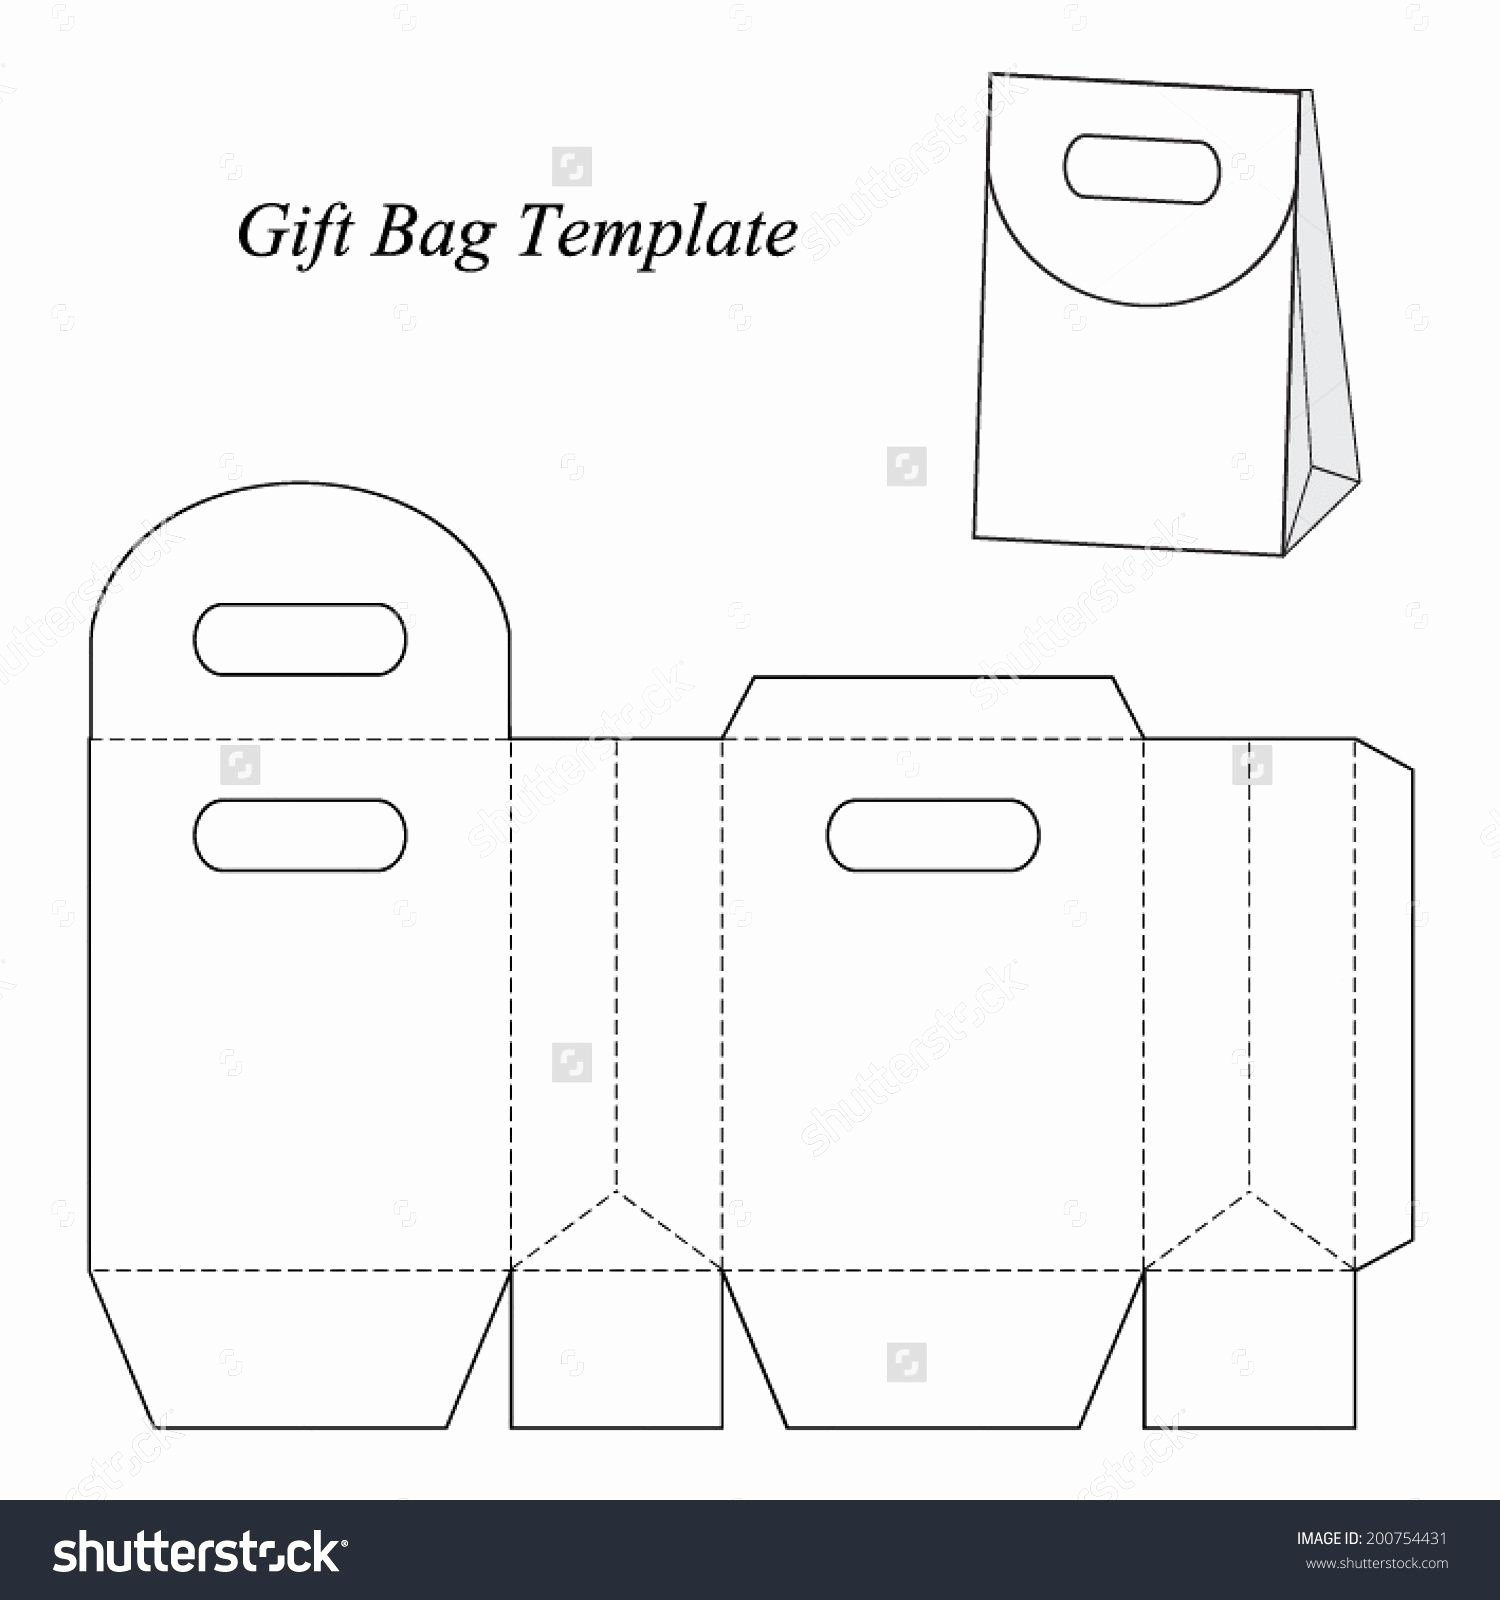 Free Paper Purse Template Printable Lovely Image Result for Gift Bag Template Cricut